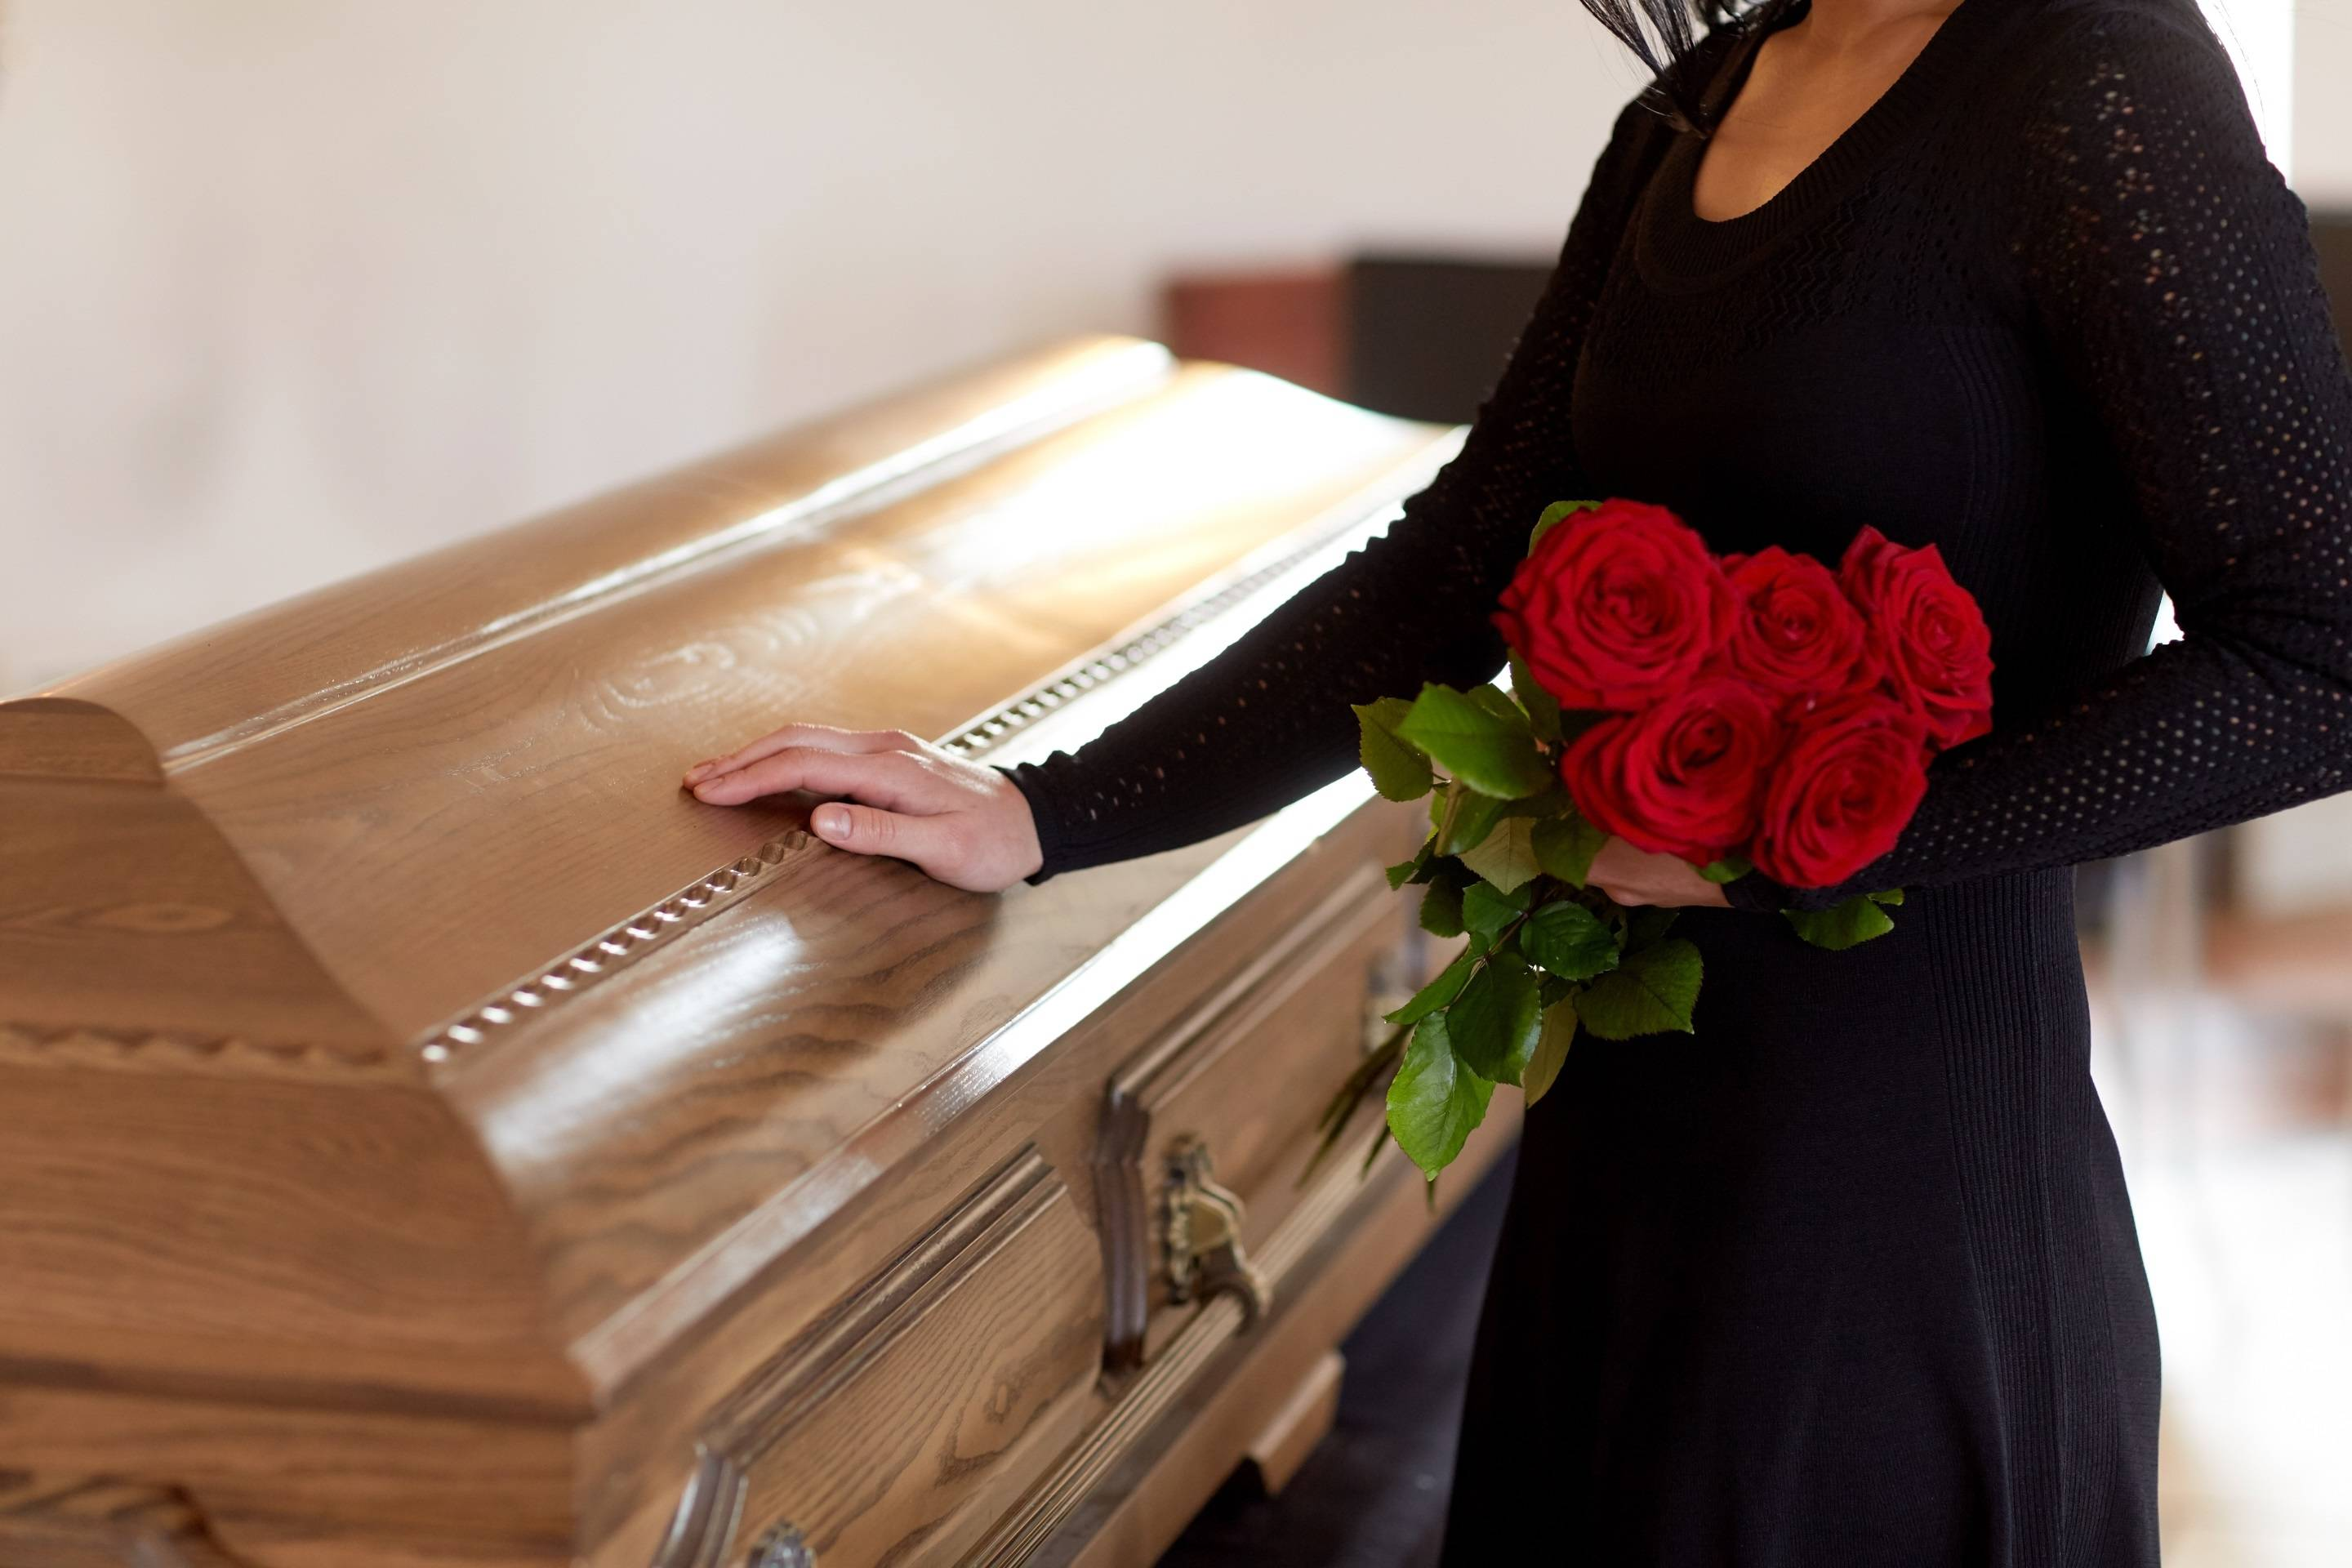 Funeral etiquette the dos and donts ak lander ak lander funeral etiquette the dos and donts izmirmasajfo